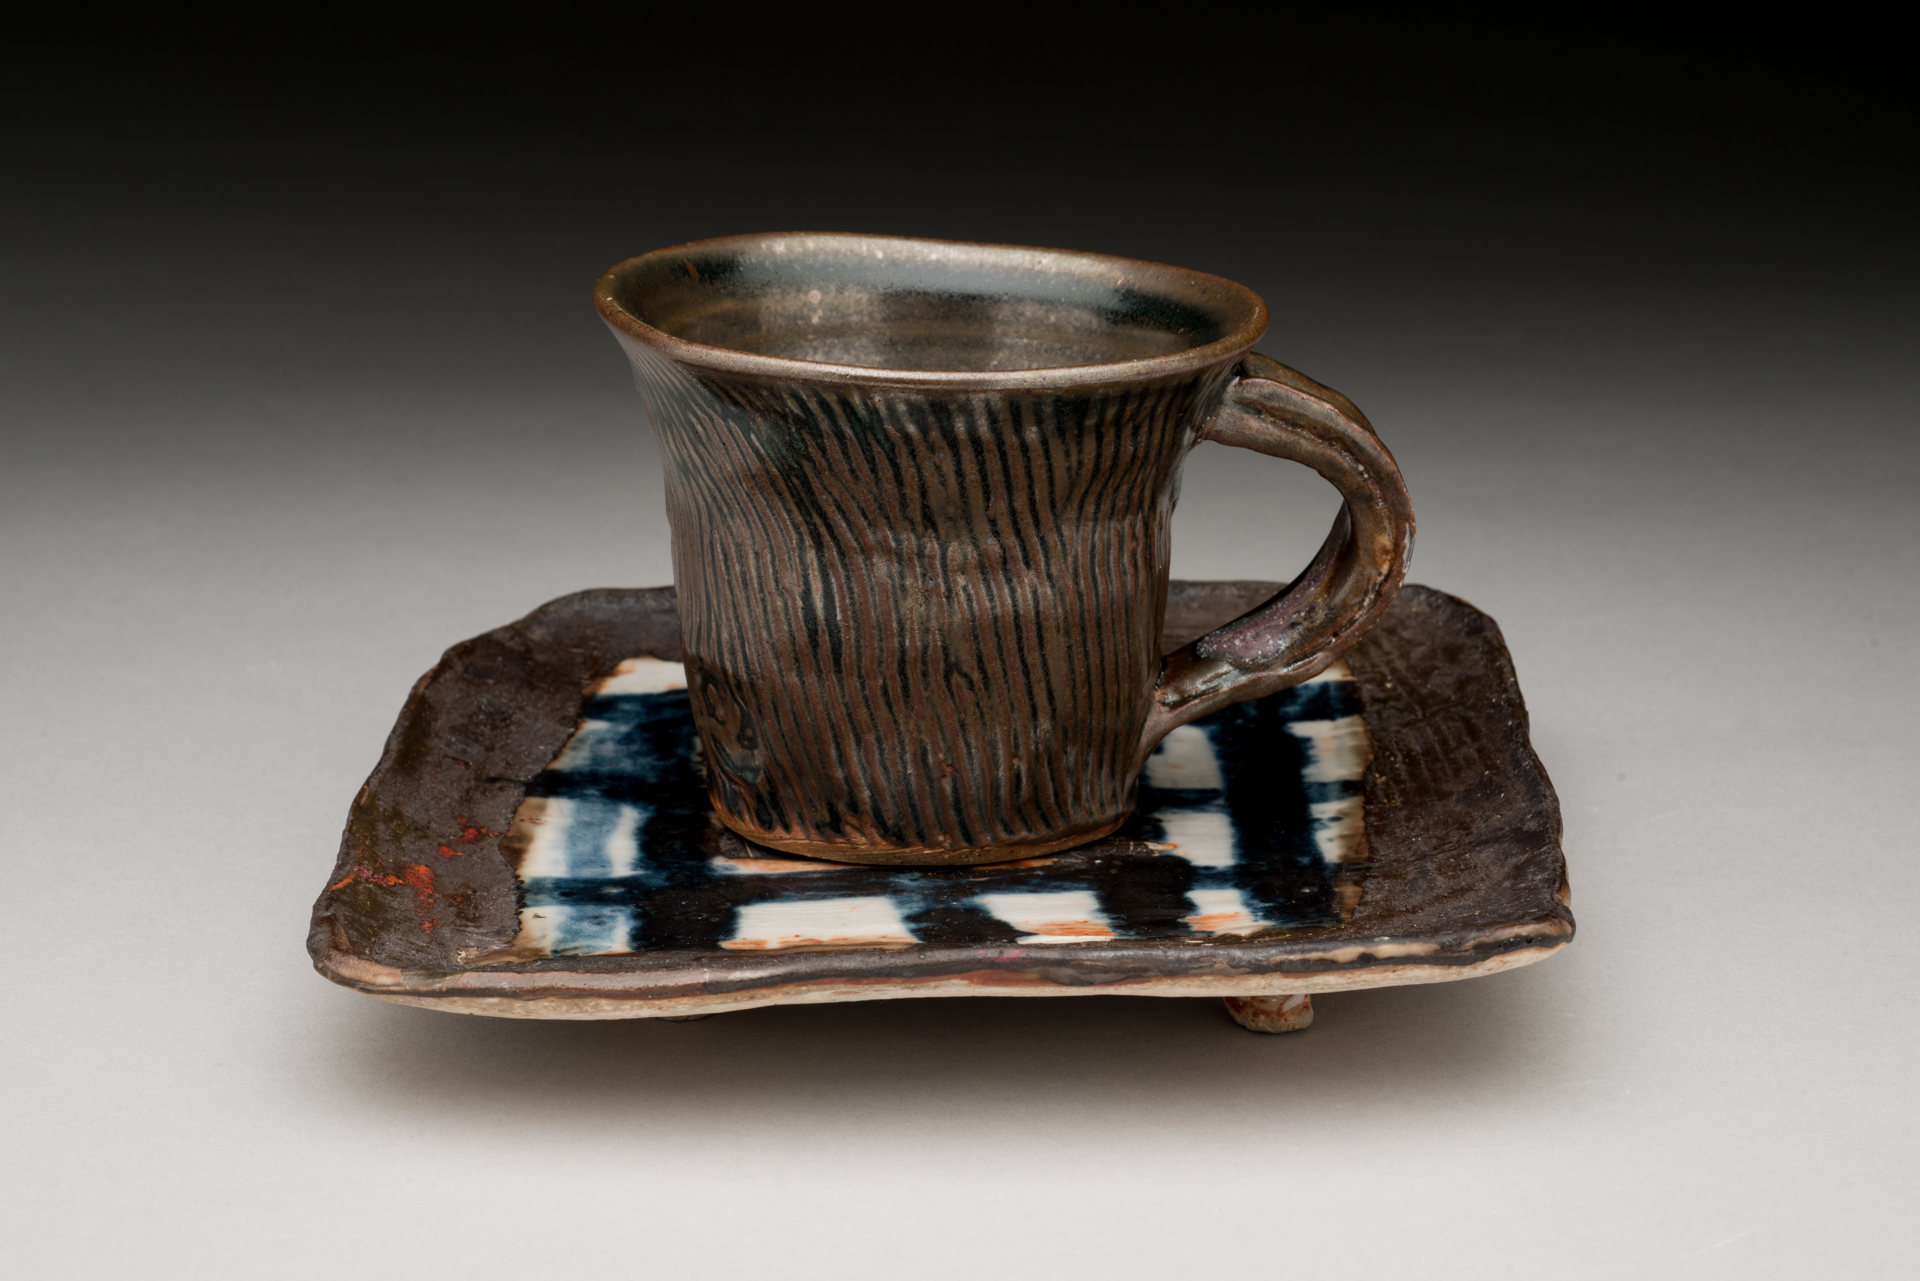 "Brown  textured cup and Blue and White checkered plate..-cup-3""Hx6""L., plate appx.7.5""square, 2016"